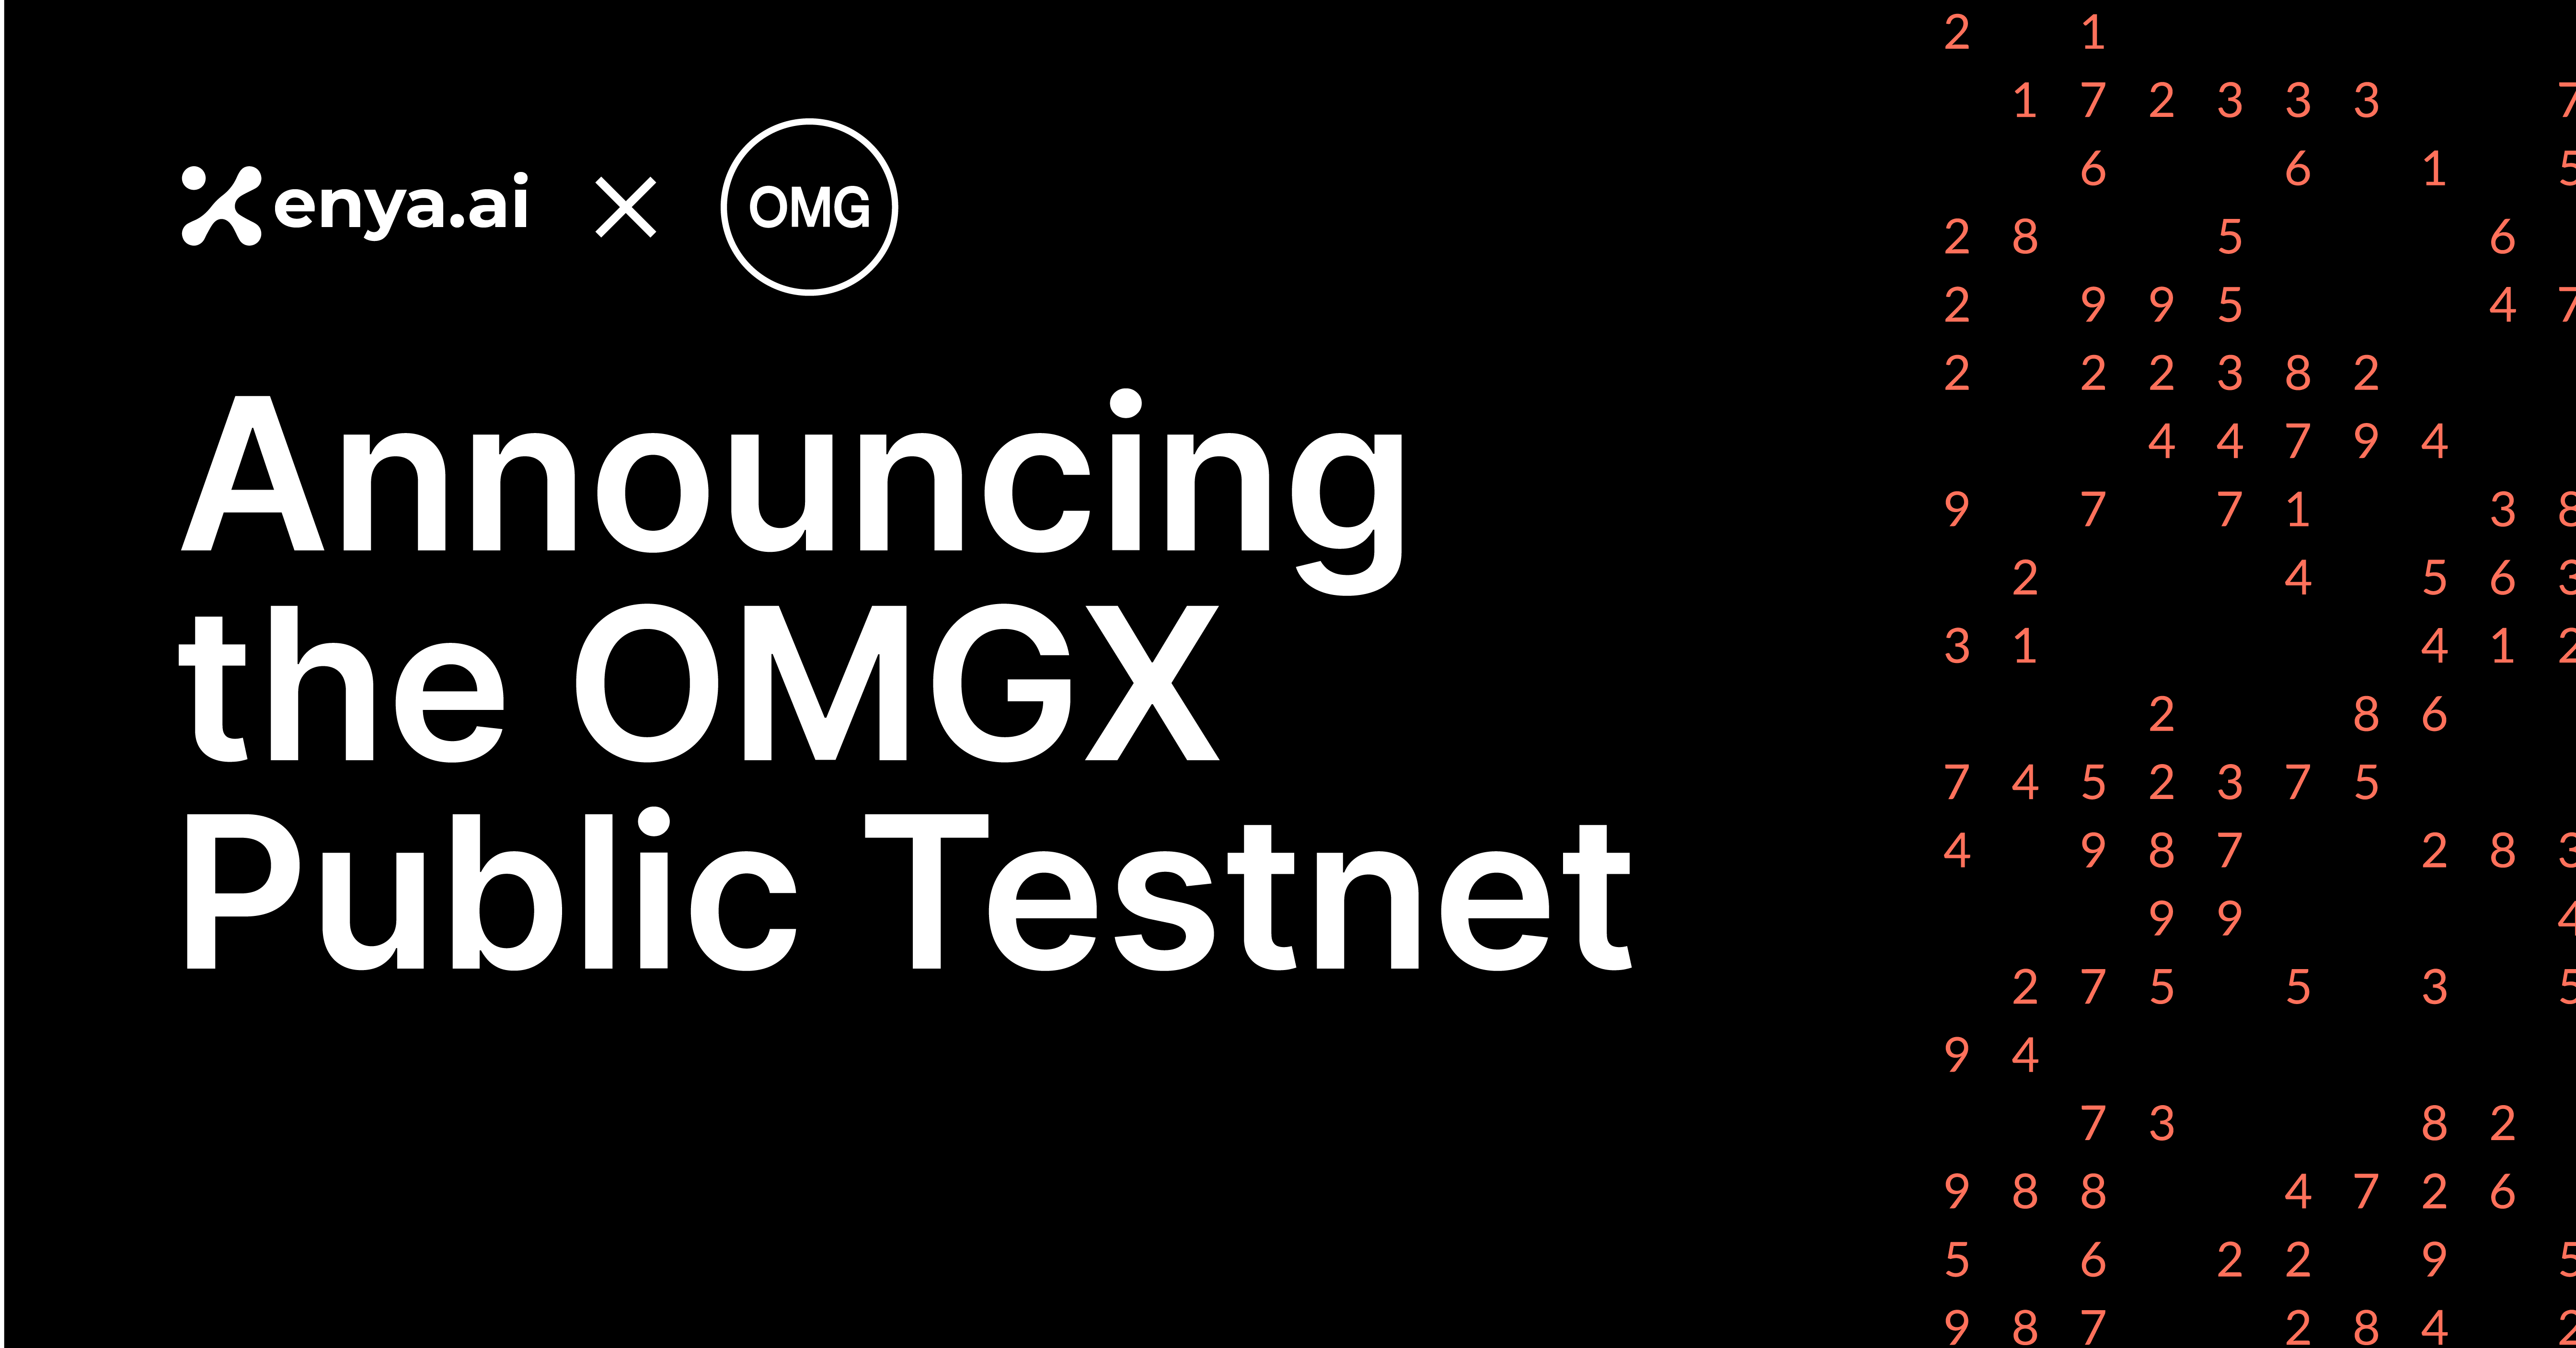 Enya Launches Public Testnet of OMG Network's Ethereum Scaling Solution – OMGX